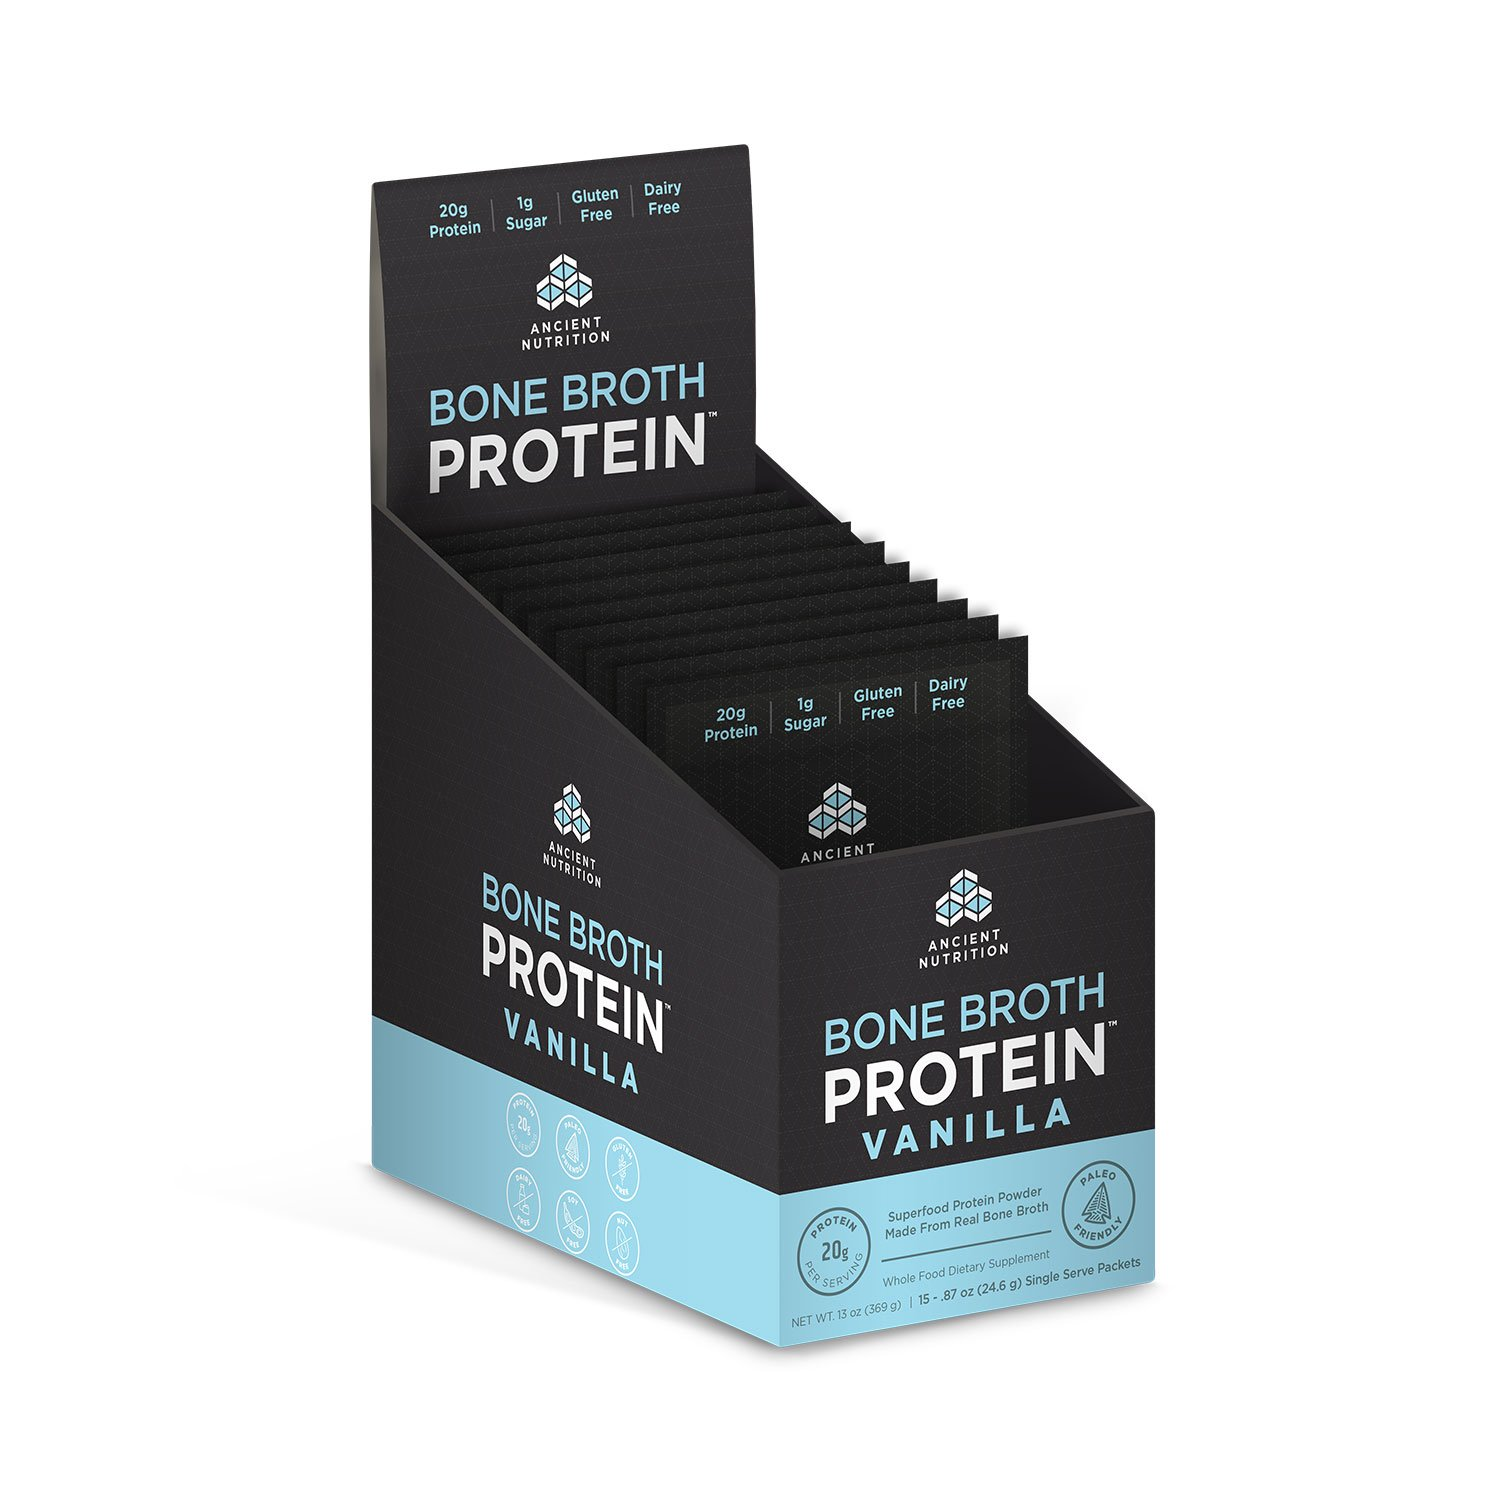 Ancient Nutrition Bone Broth Protein Powder, Vanilla Flavor, 15 Single Packets by Ancient Nutrition